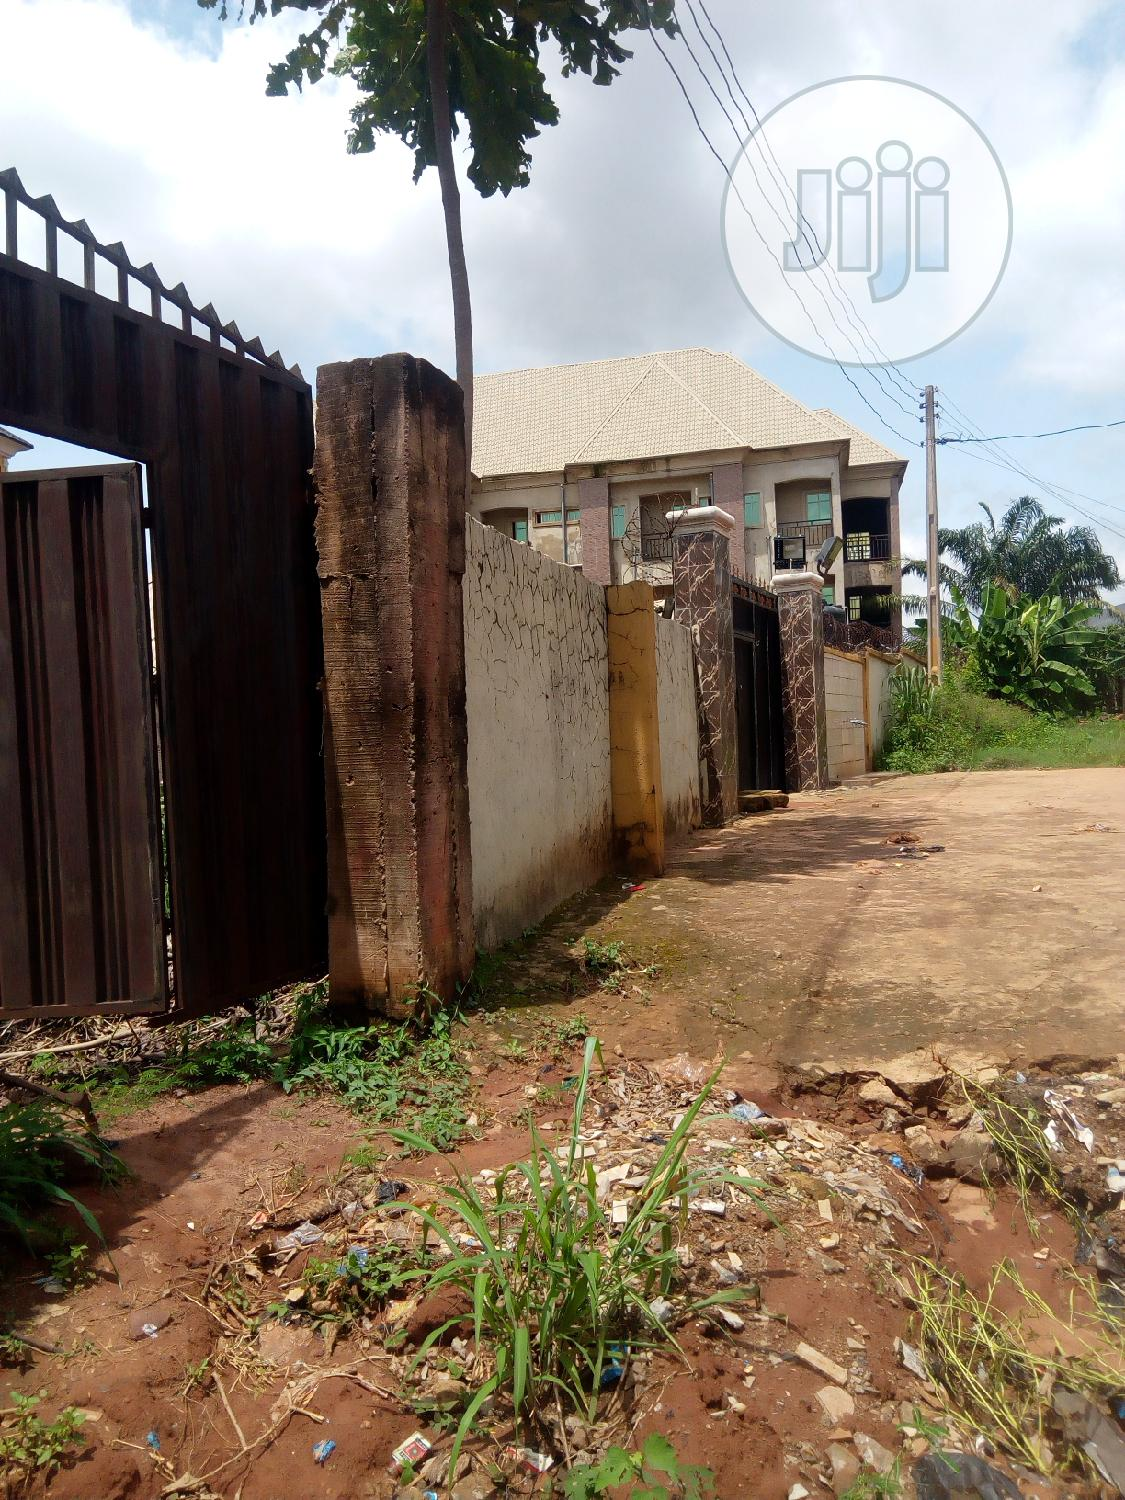 Bugalow Insinde 2plot Of Land For Sale At Old English Side | Houses & Apartments For Sale for sale in Awka, Anambra State, Nigeria